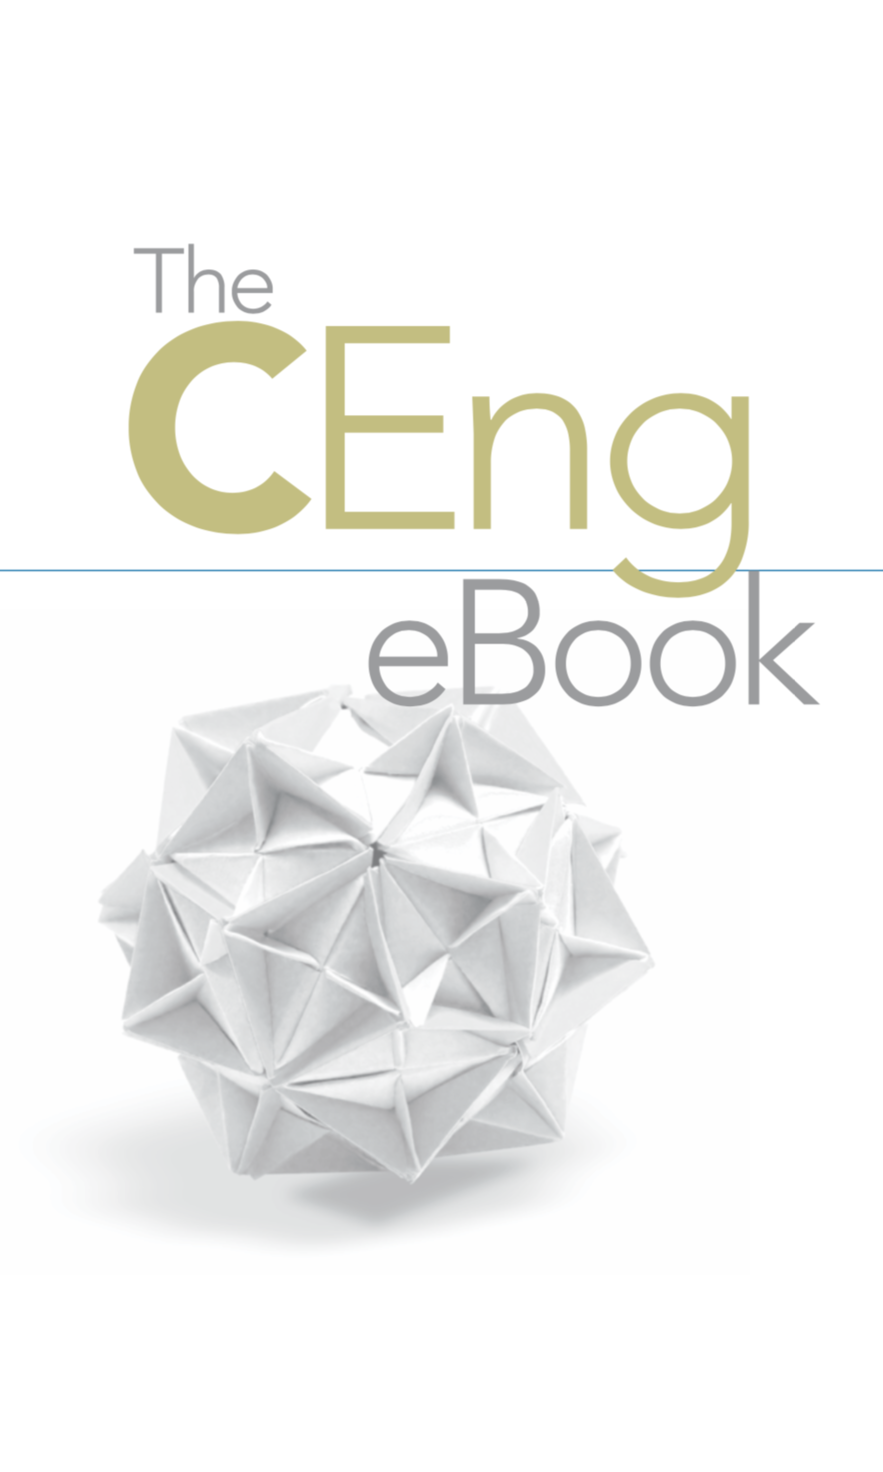 Engineering Council CEng eBook